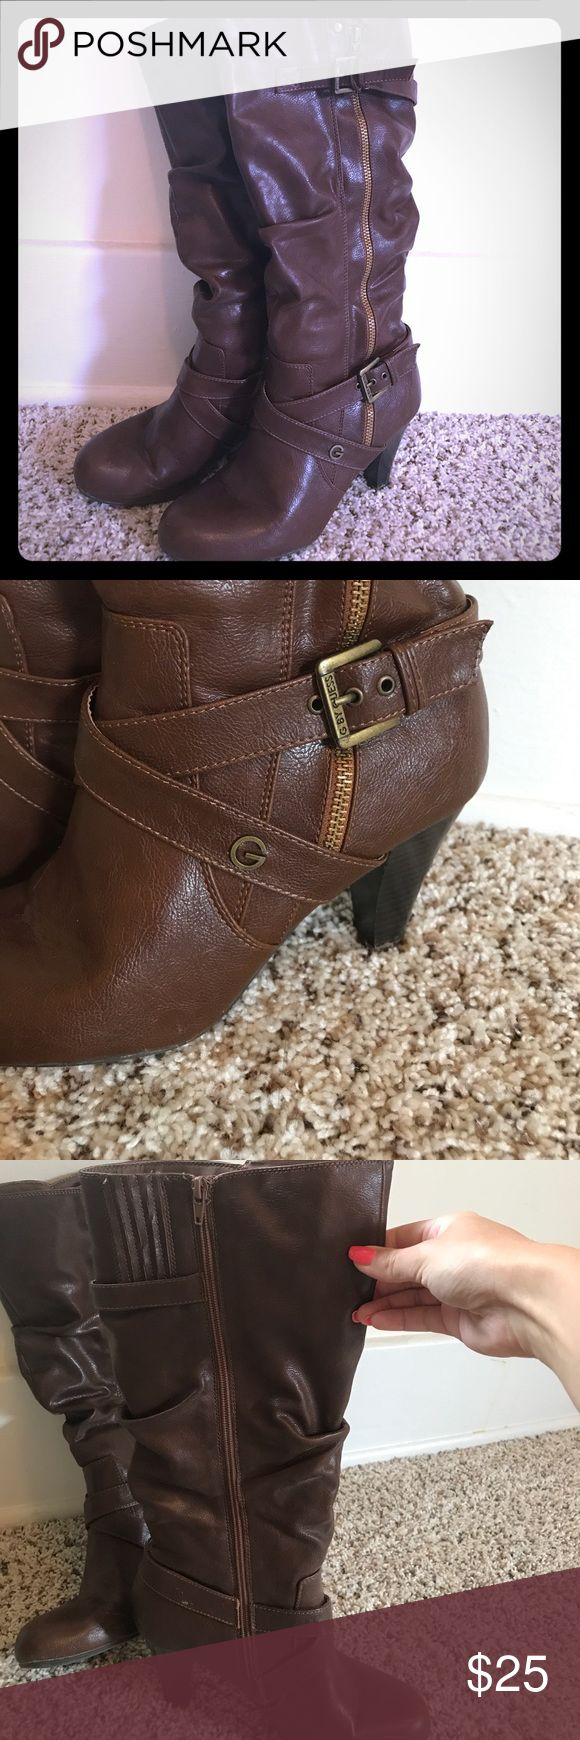 G by Guess Brown Heel Boots G by Guess dark brown mid-calf heel boot. Buckle and zipper accents on outside. Full zipper on inside for easy on and off. Stretchy at top so no worries if you have wide calfs. True to size - Size 9. Would not wear thick socks. 2-2 1/2 in heel if that. Smoke free home. G by Guess Shoes Heeled Boots